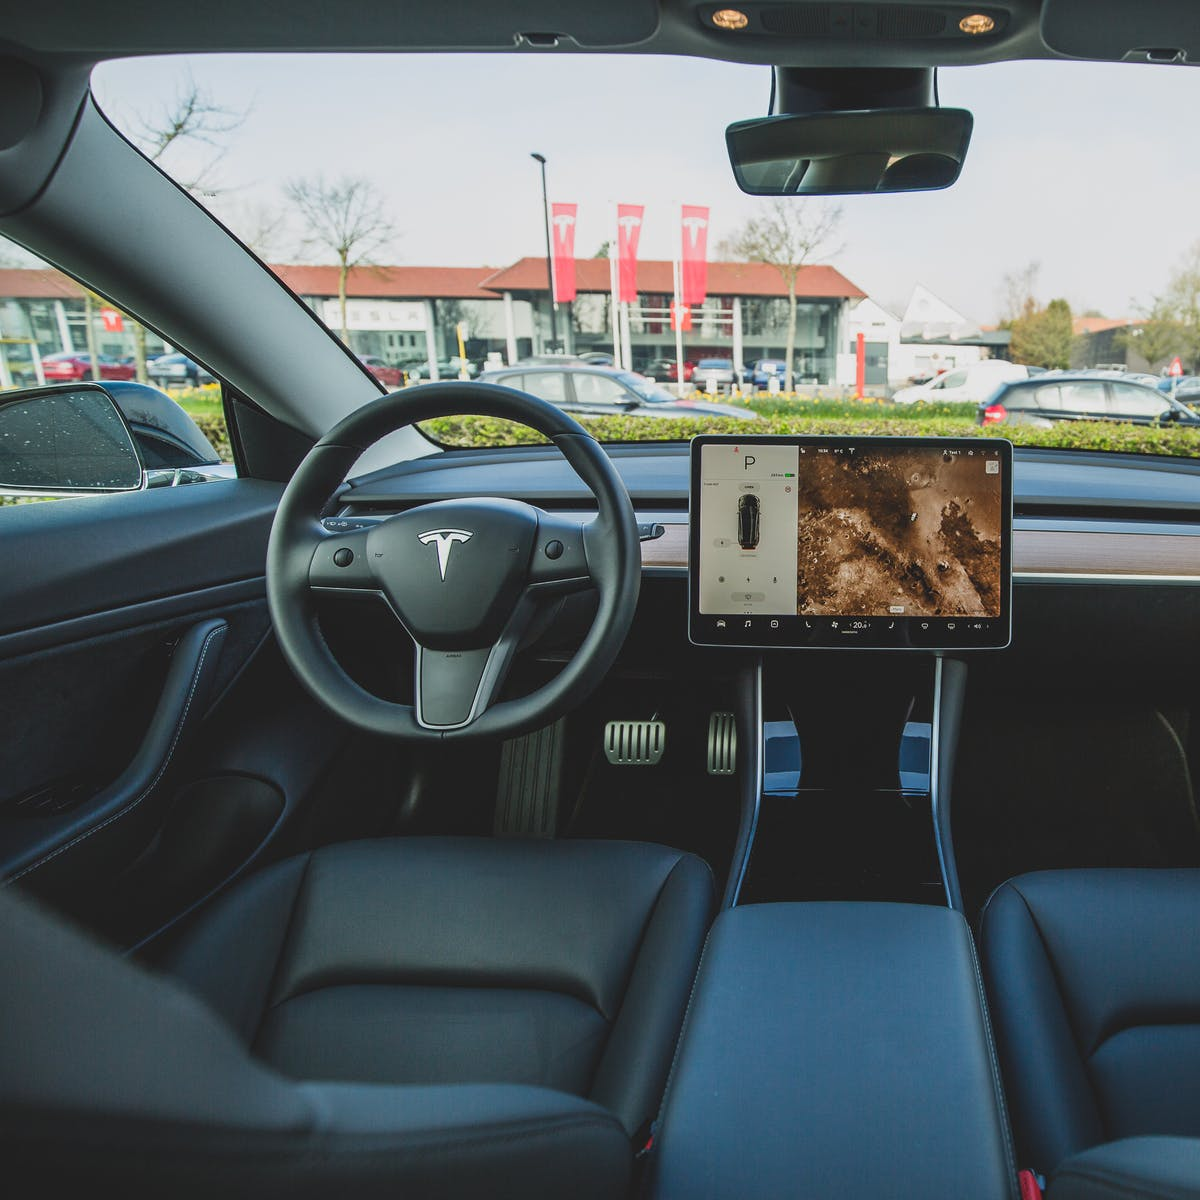 Project Titan: Apple's Latest Hire Suggests Its Car Could Be Tesla-Esque